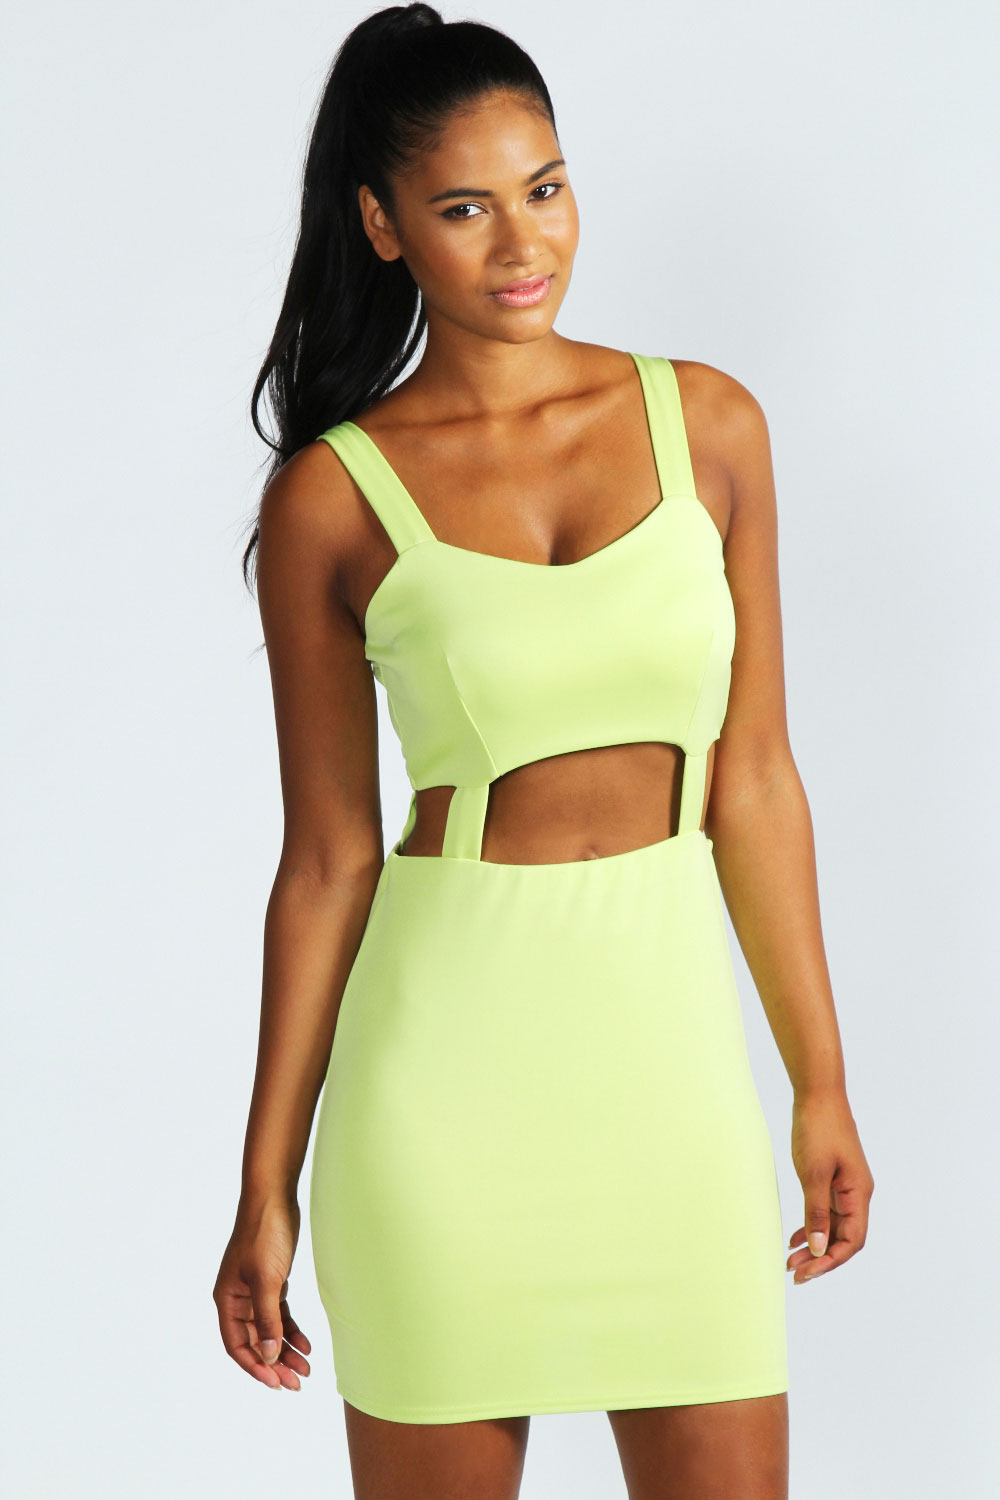 Neon Colors For Hot Summer 2013